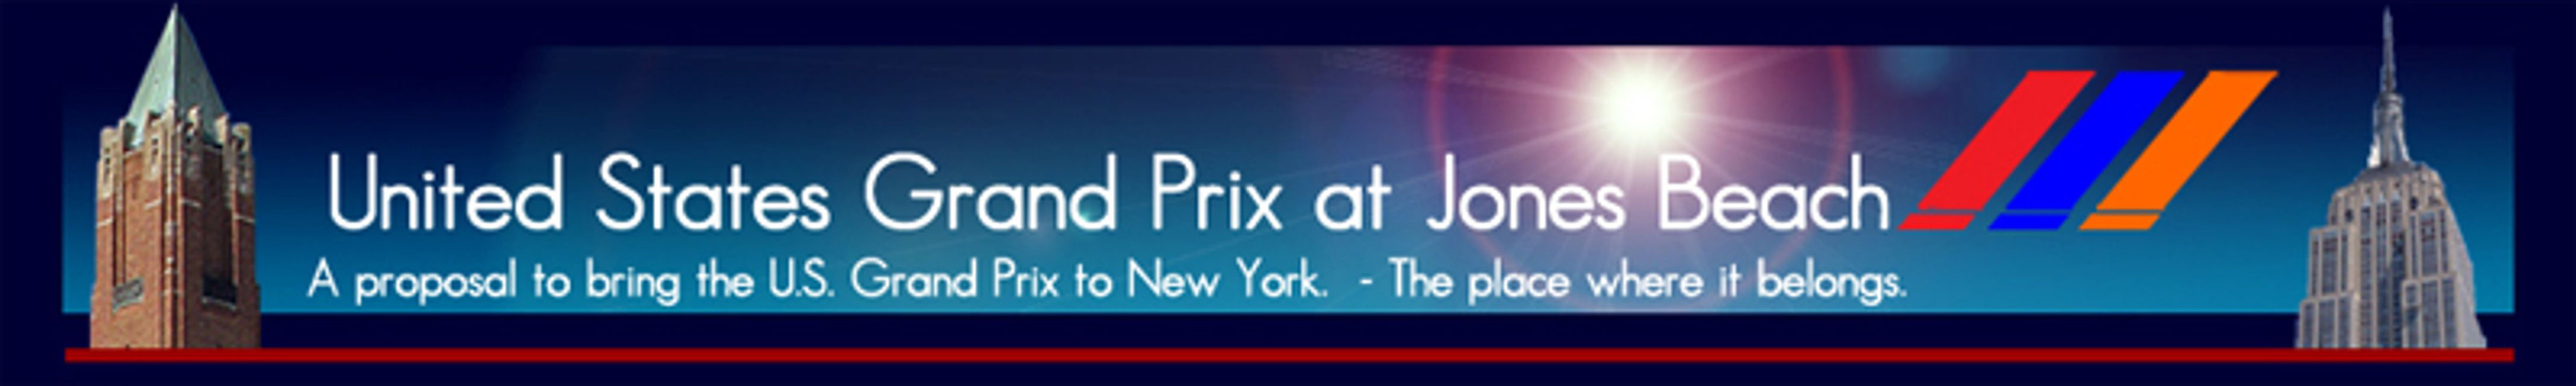 U.S. Grand Prix at Jones beach A proposal to bring F1 to New York. U.S. GP JB